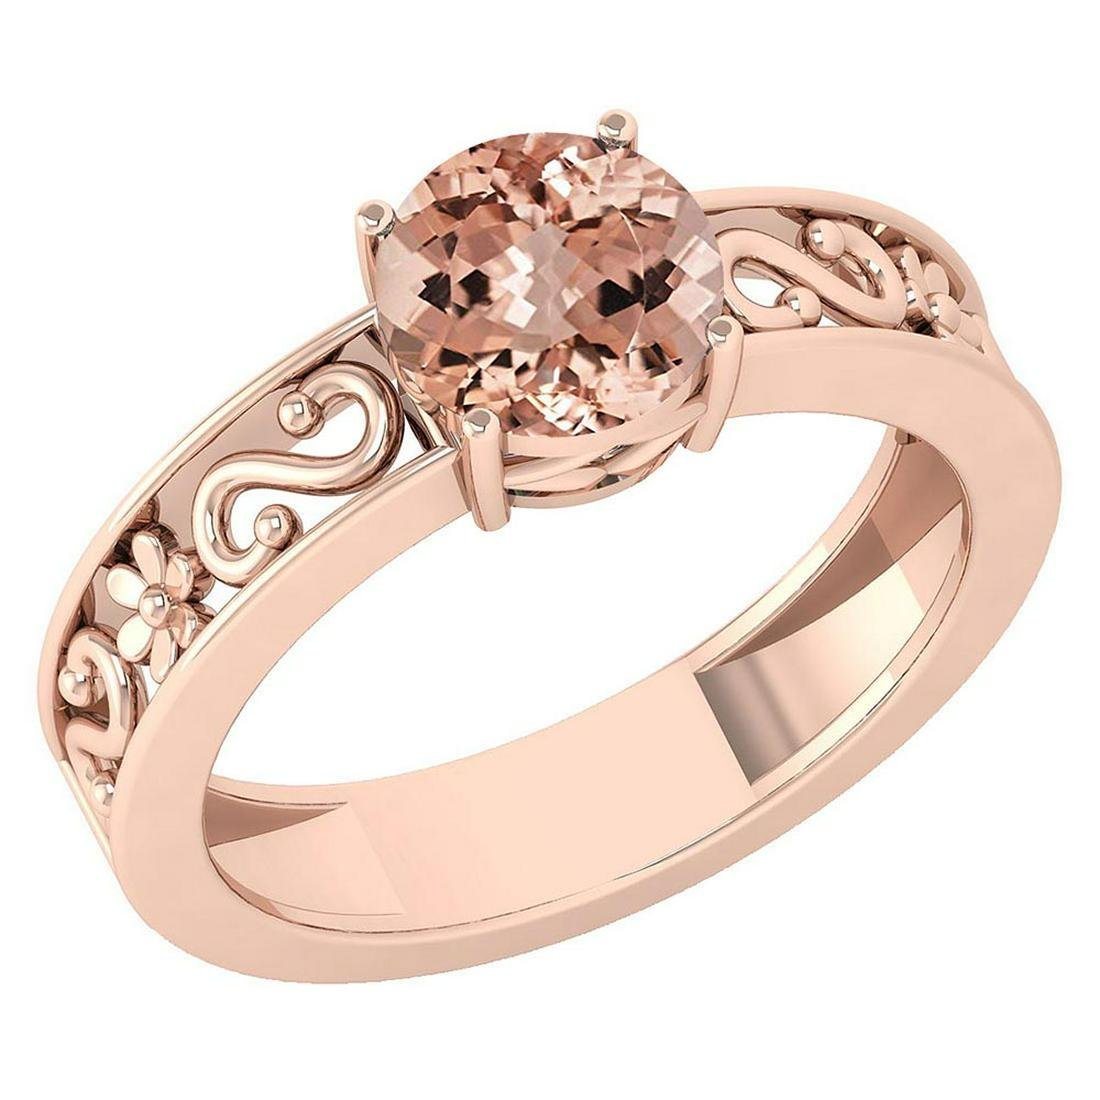 Certified 1.25 Ctw Morganite Solitaire Ring with Filigr